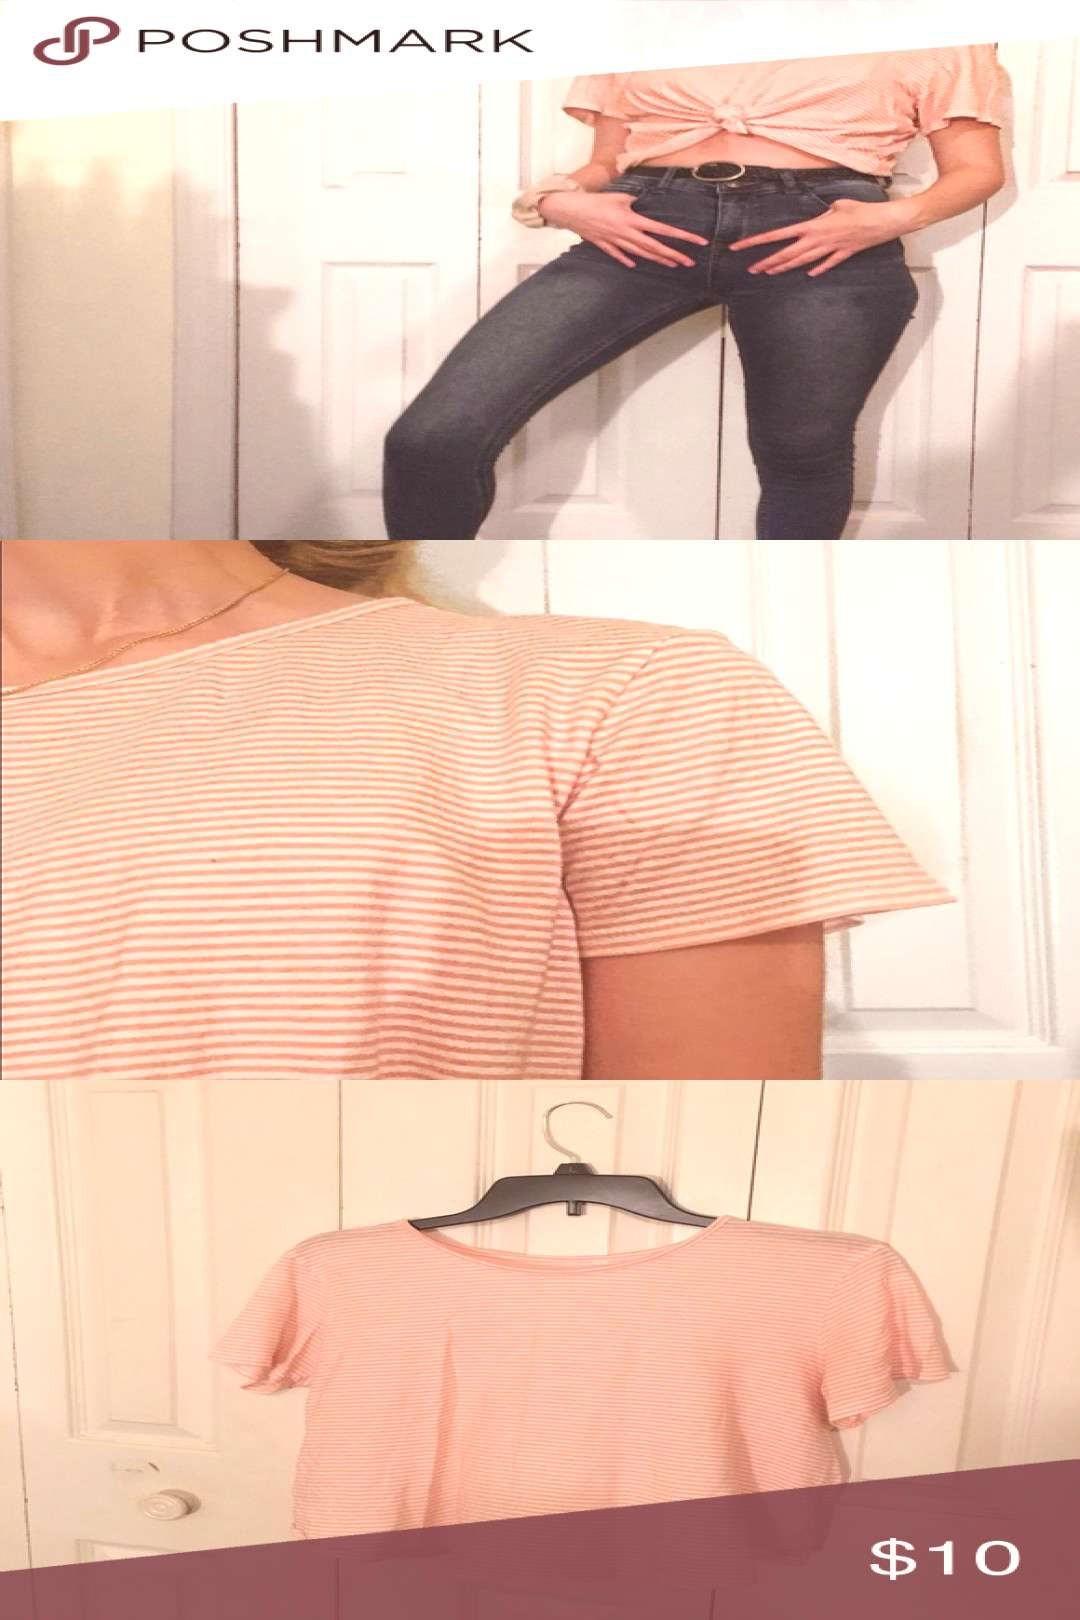 light pink and white striped crop top ? light pink and white striped crop top. slightly longer i